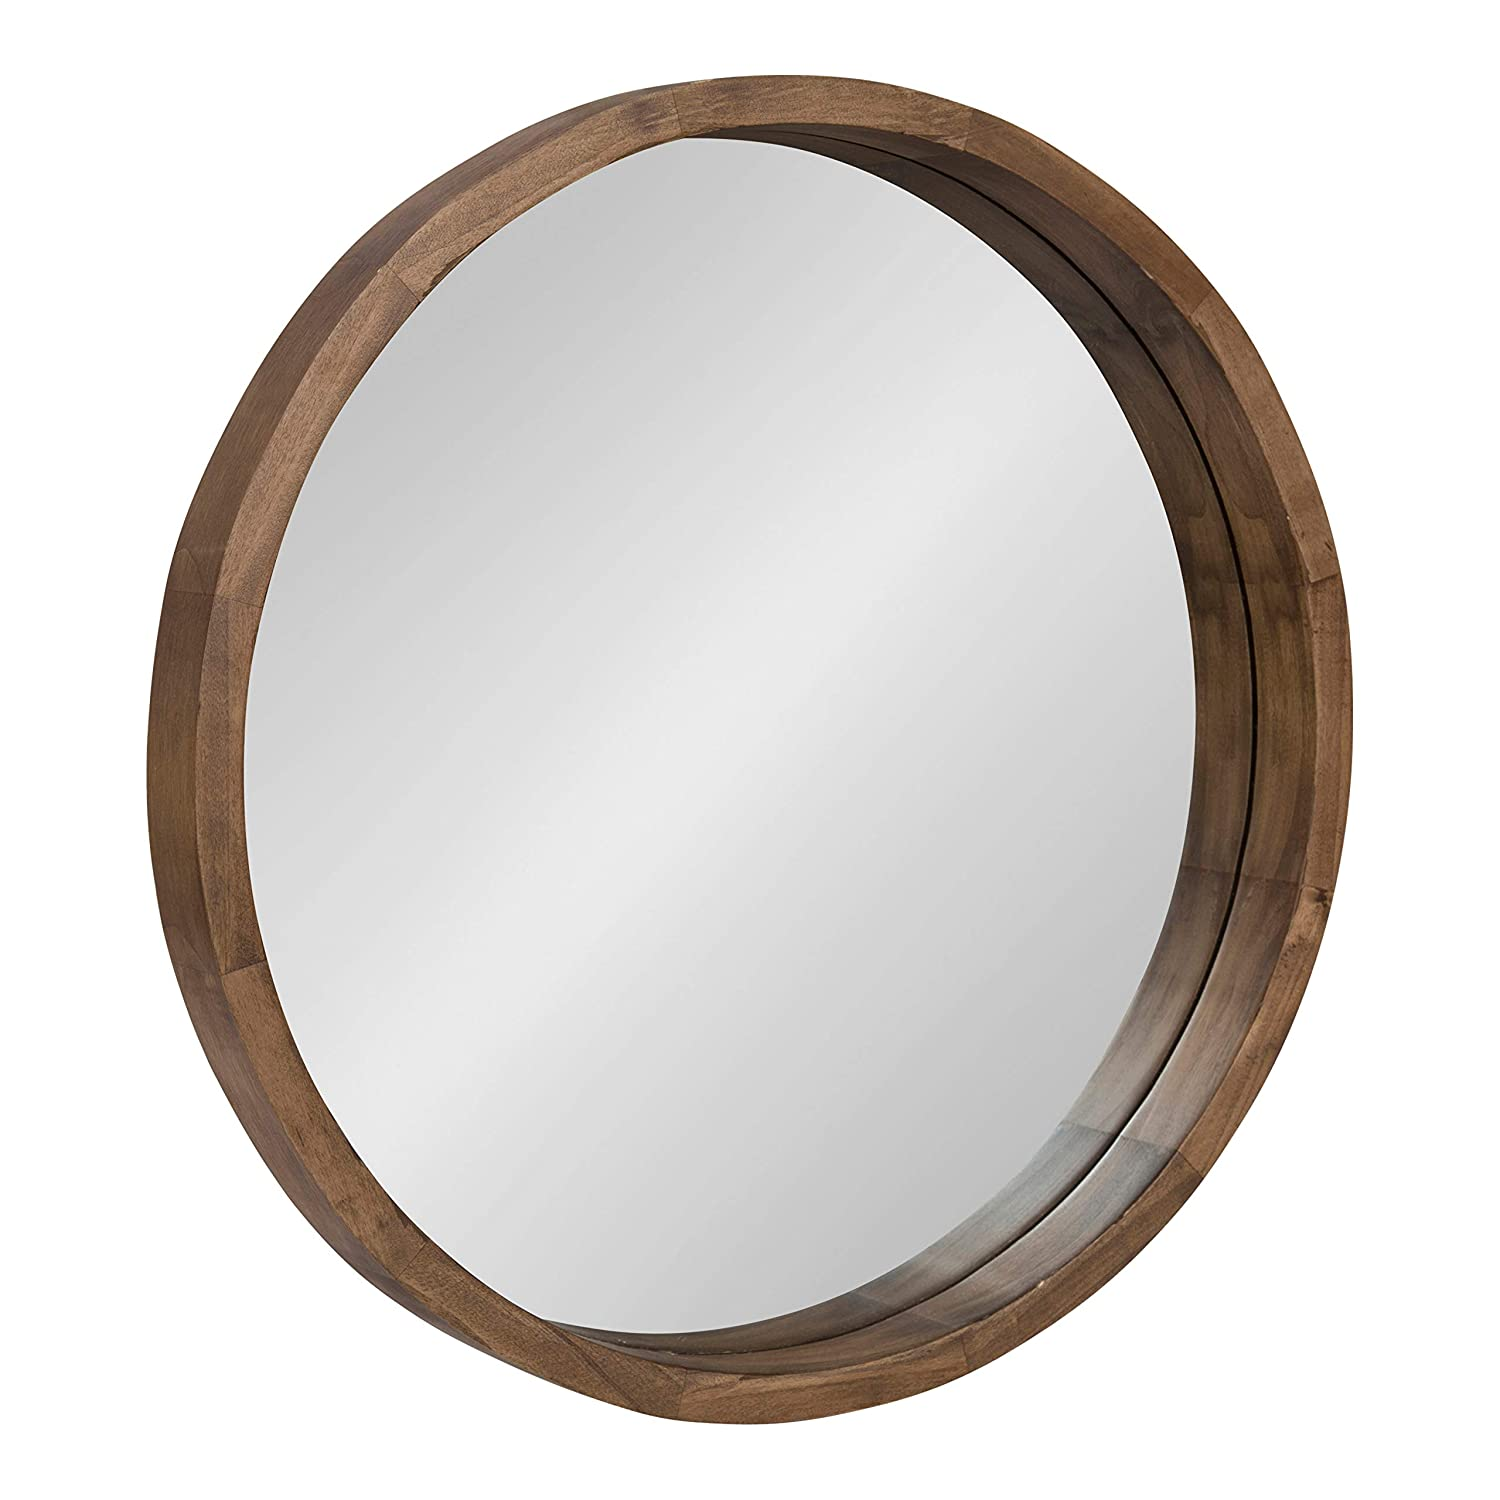 Kate and Laurel Hutton Round Decorative Modern Wood Frame Wall Mirror, 22 Inch Diameter, Natural Rustic